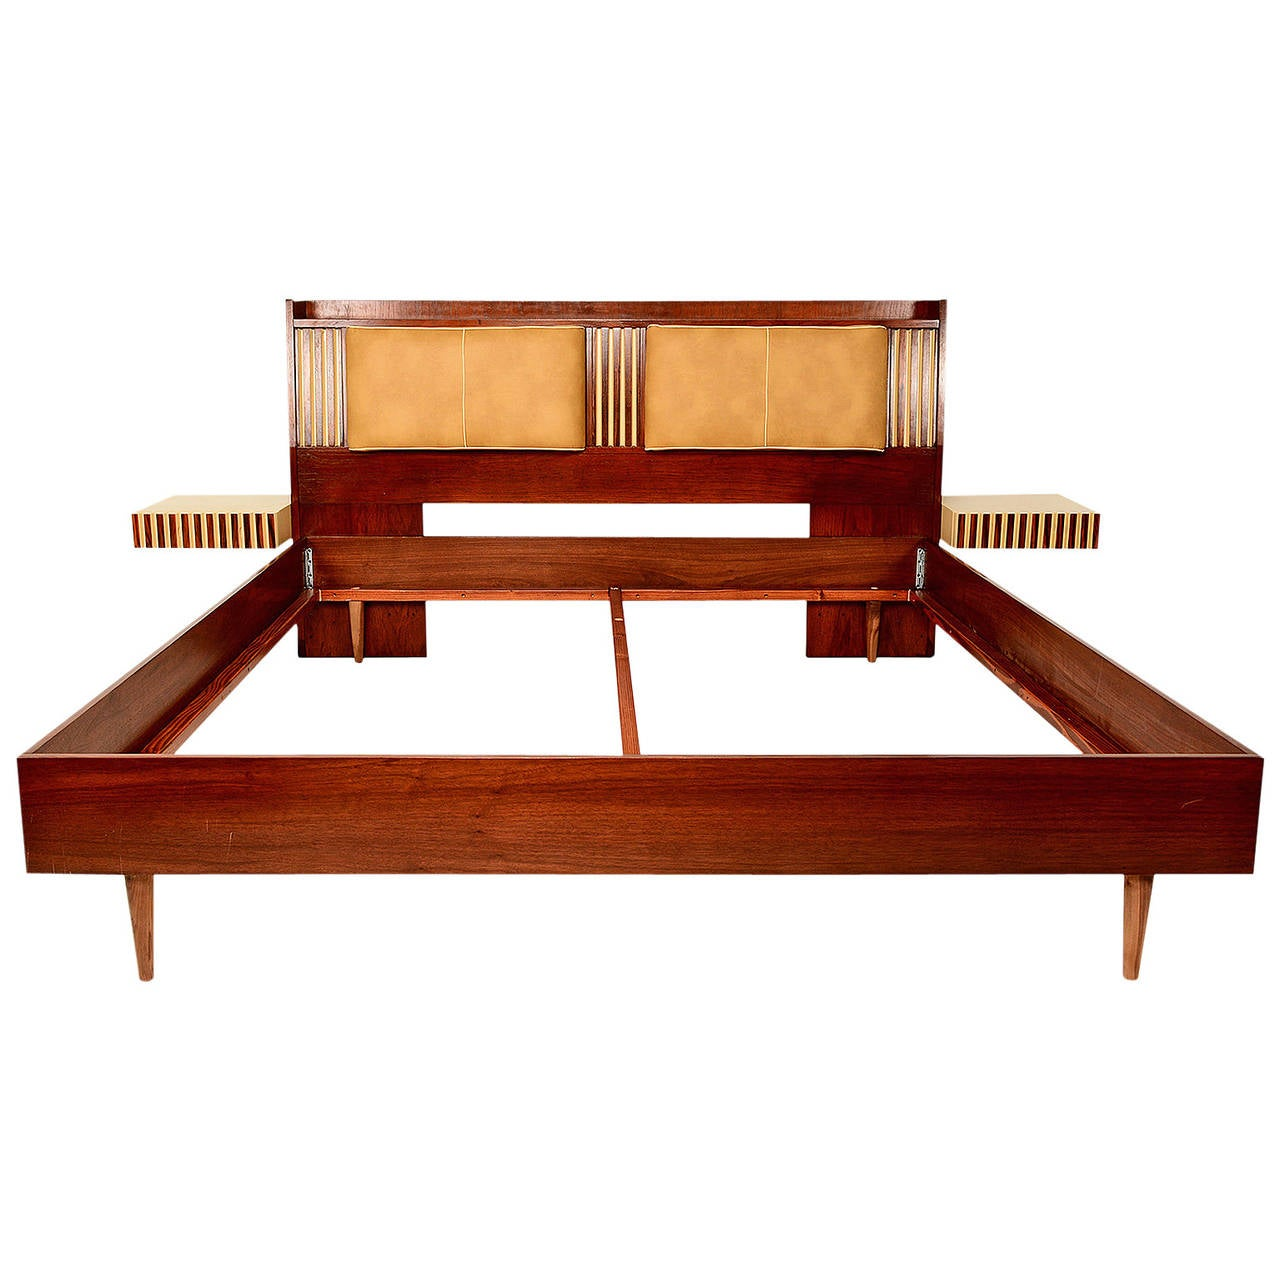 Lane king size platform bed with floating nightstands at 1stdibs - Kingsize platform beds ...